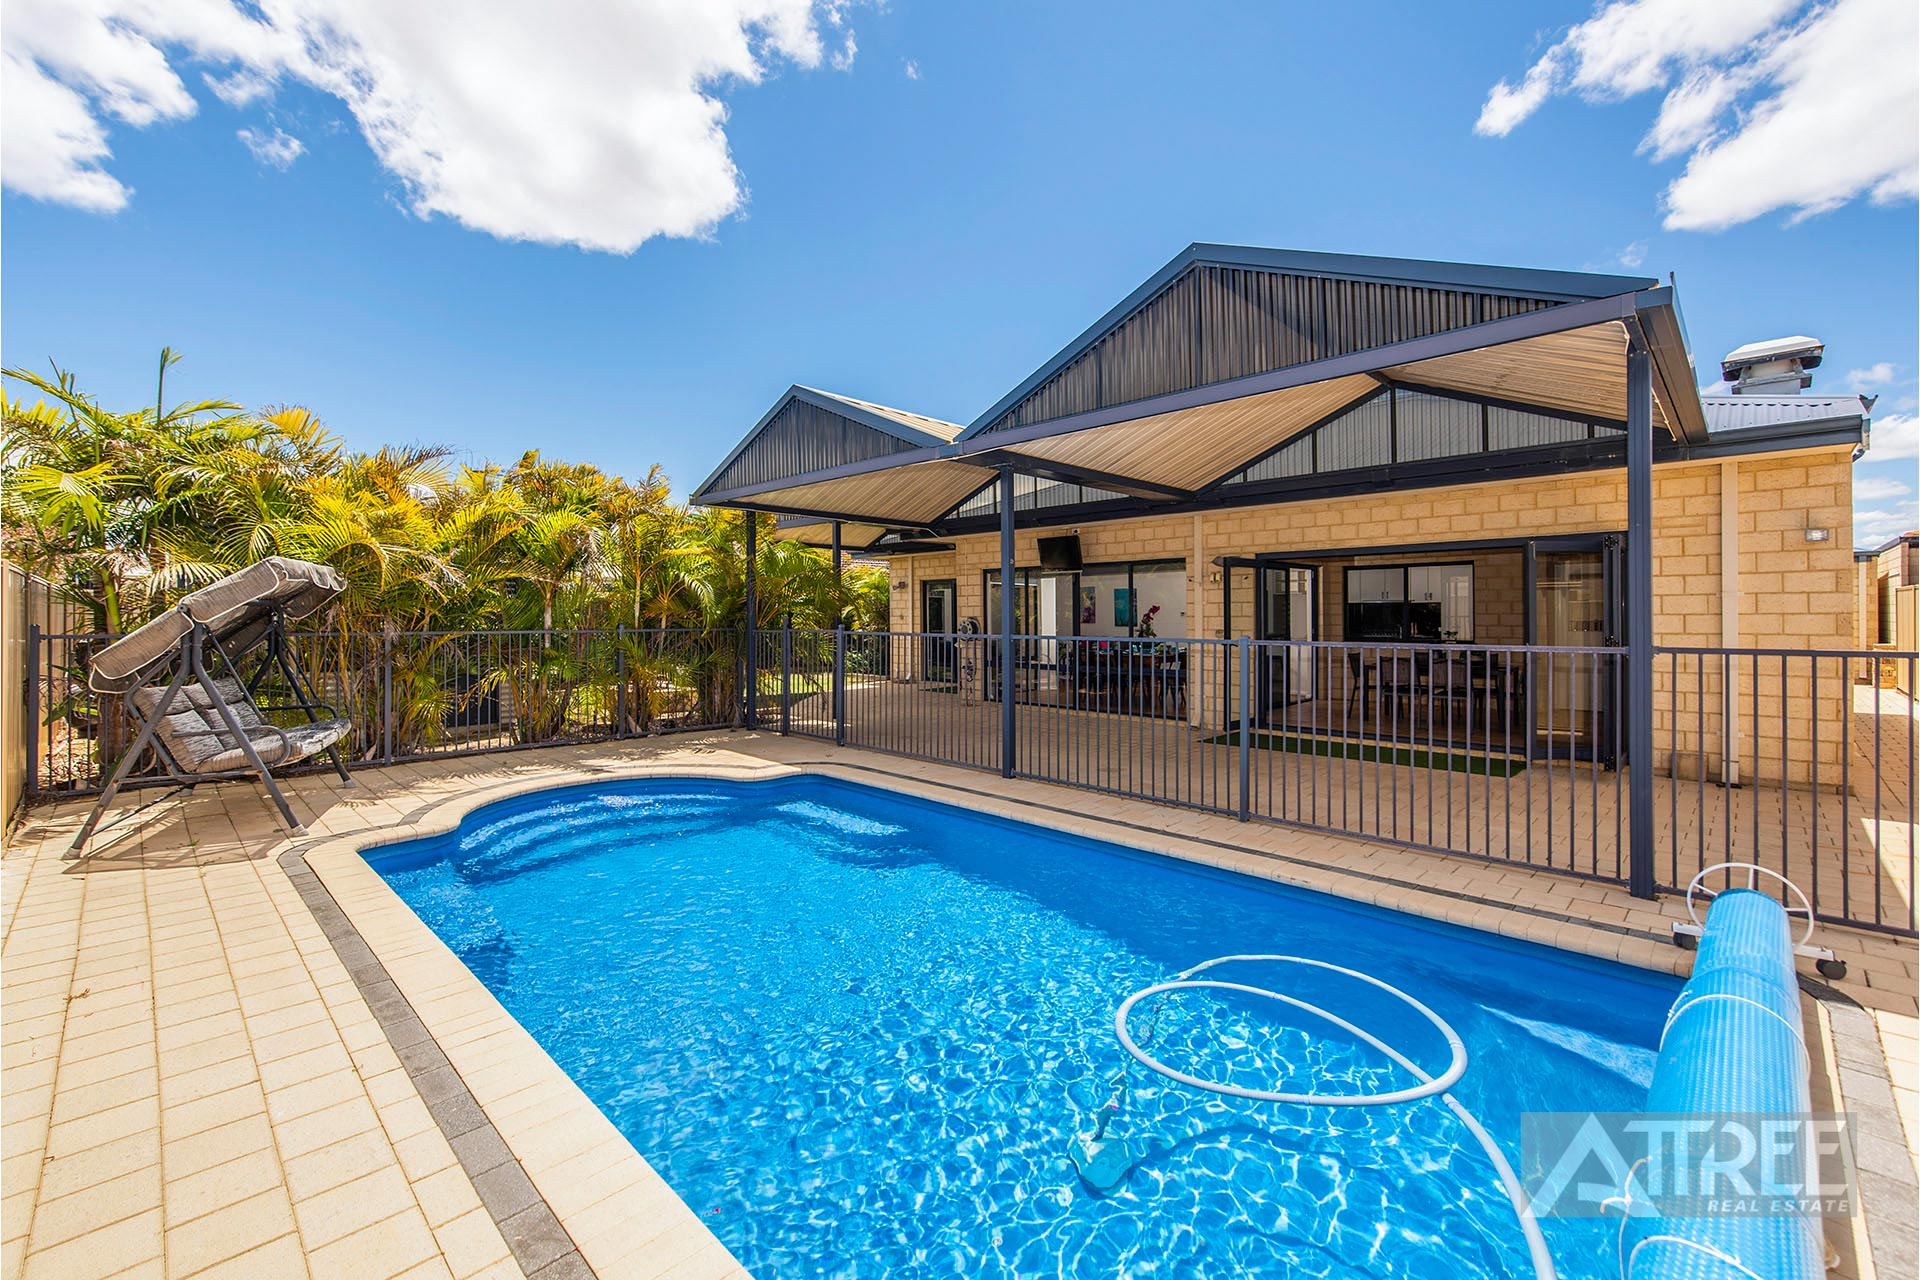 Property for sale in CANNING VALE, 13 Bradshaw Street : Attree Real Estate